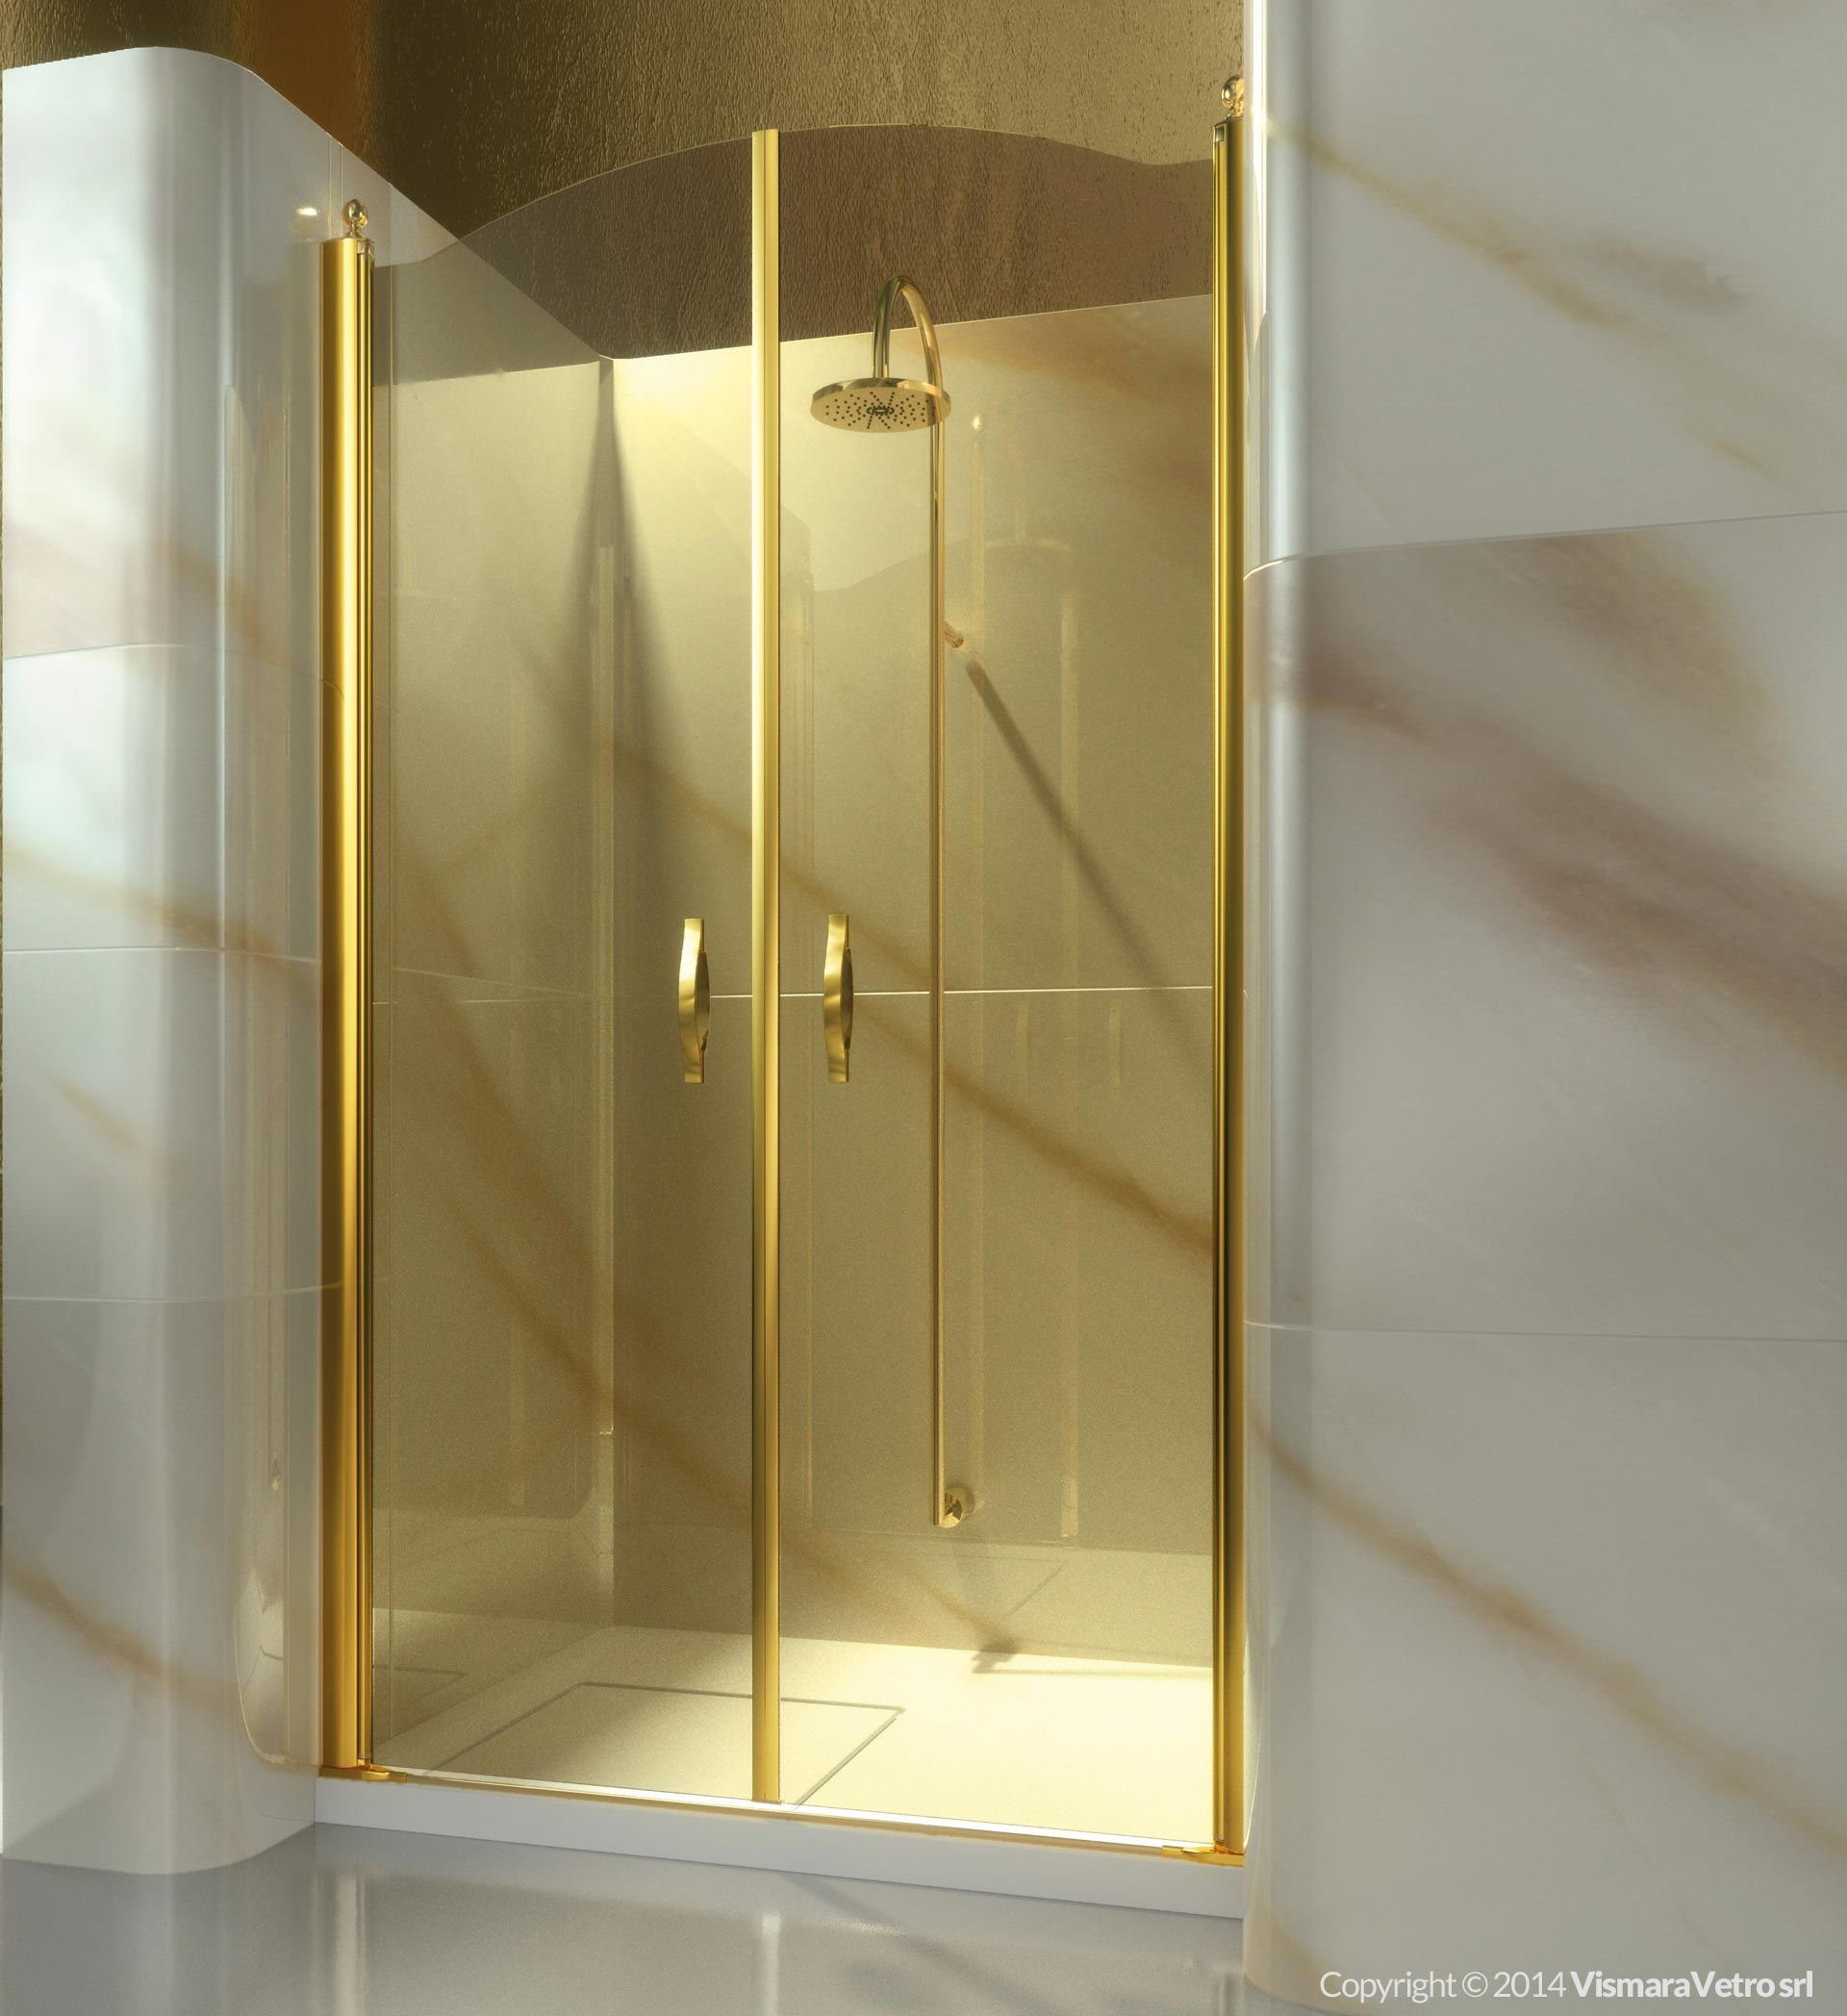 Frameless shower enclosure for recessed shower trays with a 180 ...